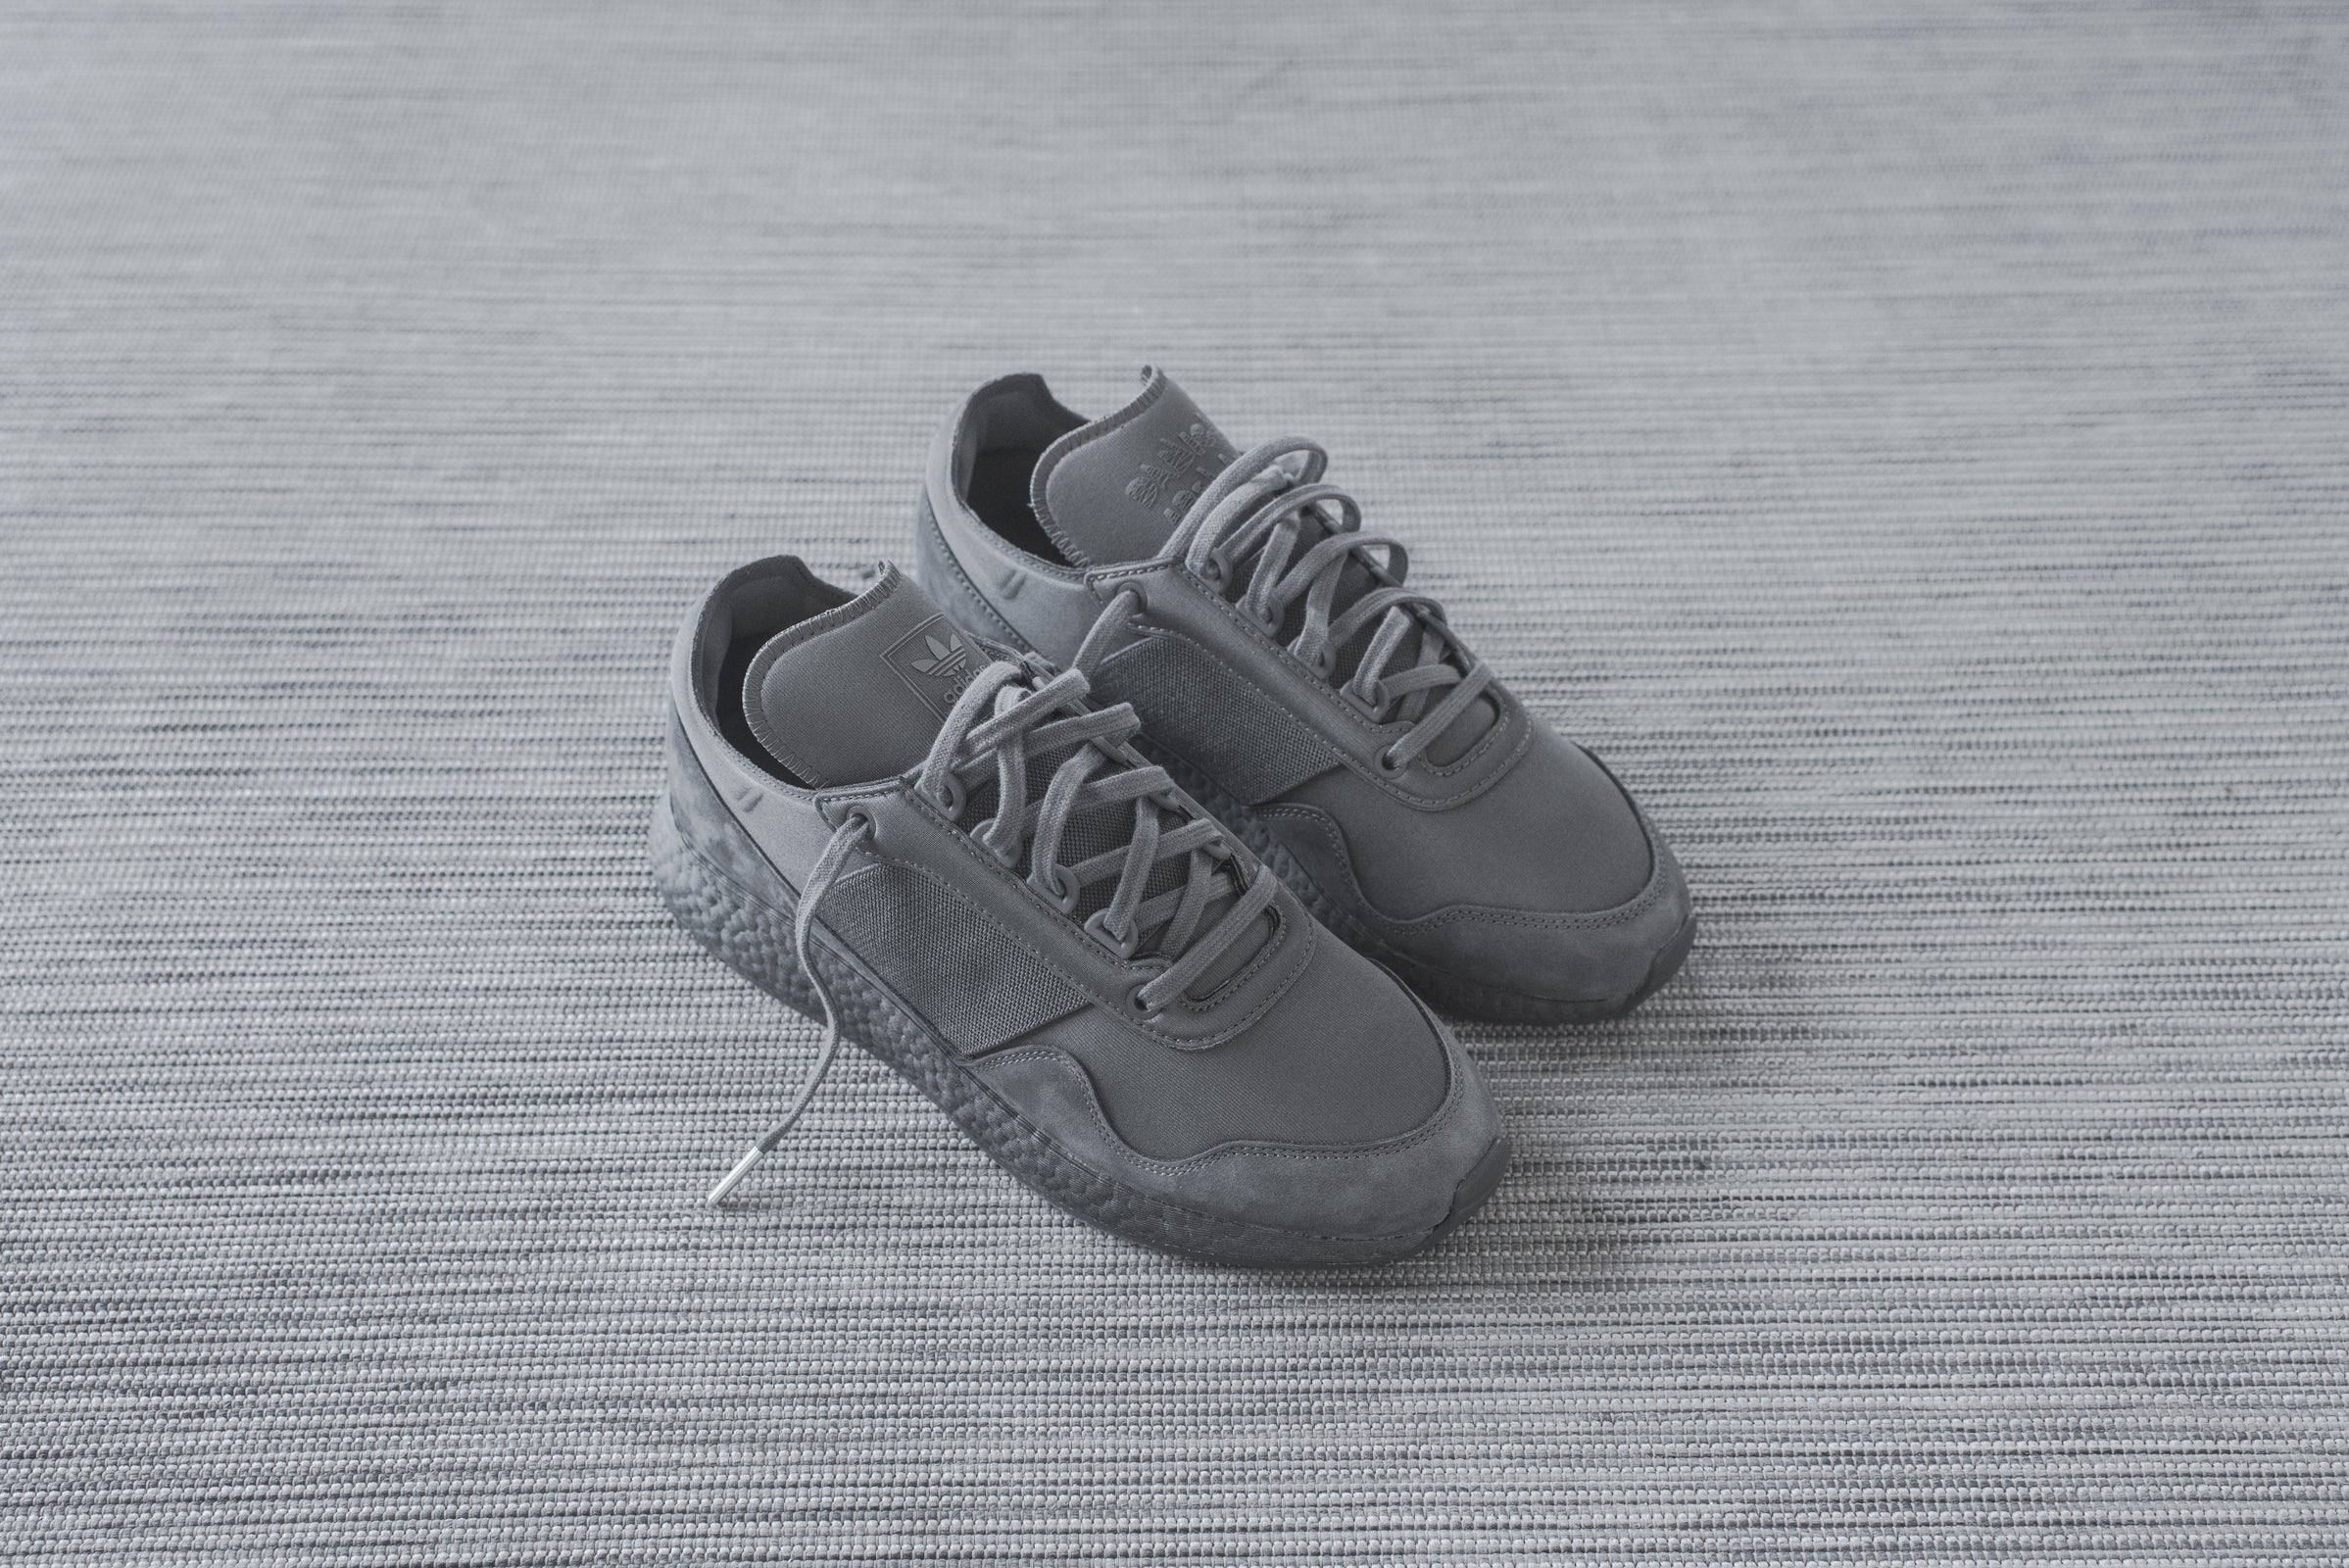 Adidas clover EQT SUPPORT ADV new men and women casual shoes